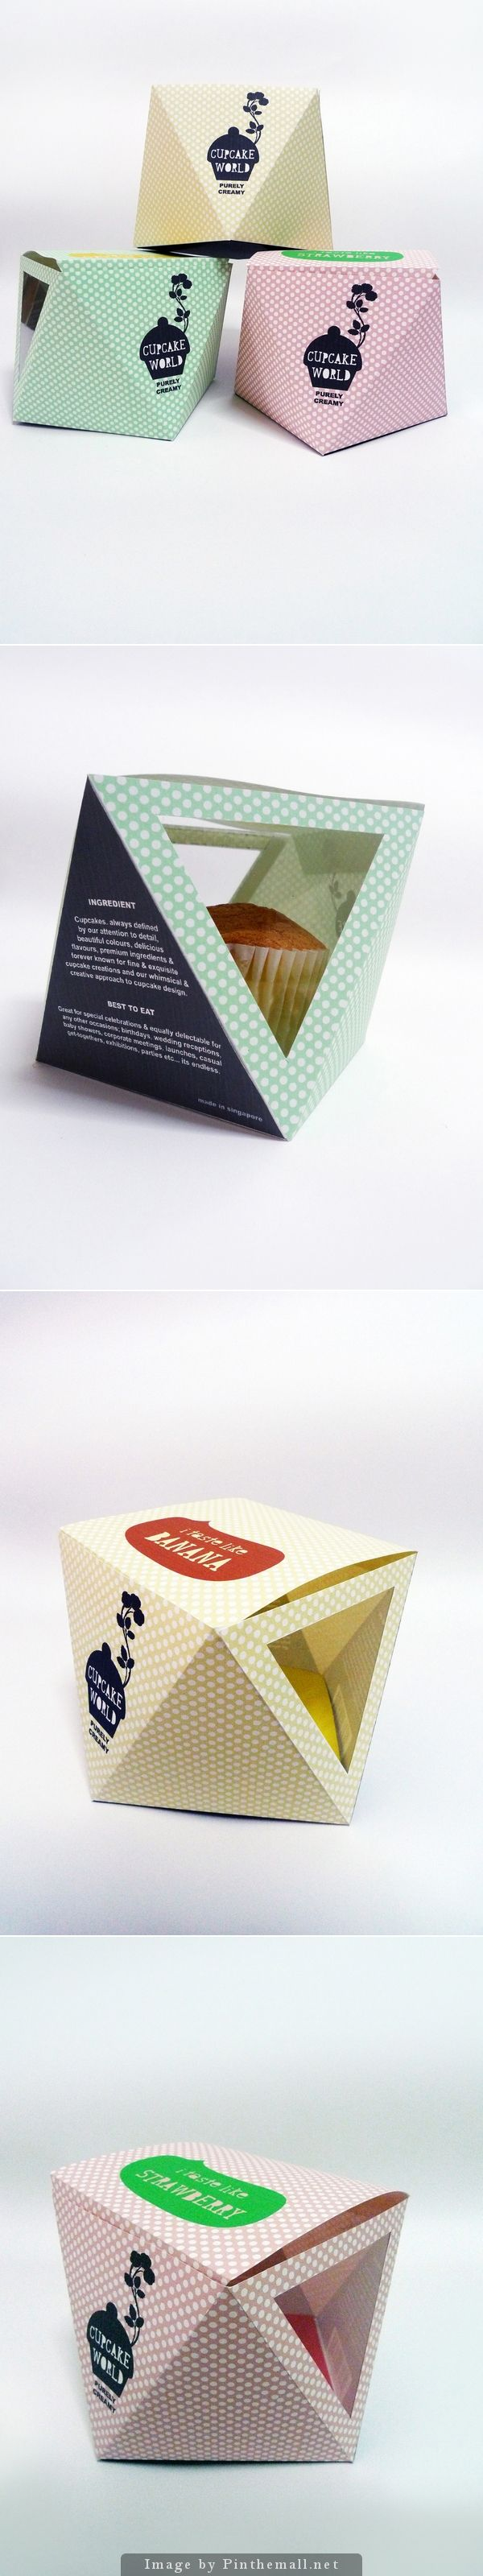 Cupcake Packaging Design by Elroy Chong, via Behance is making the rounds again as a popular pin PD